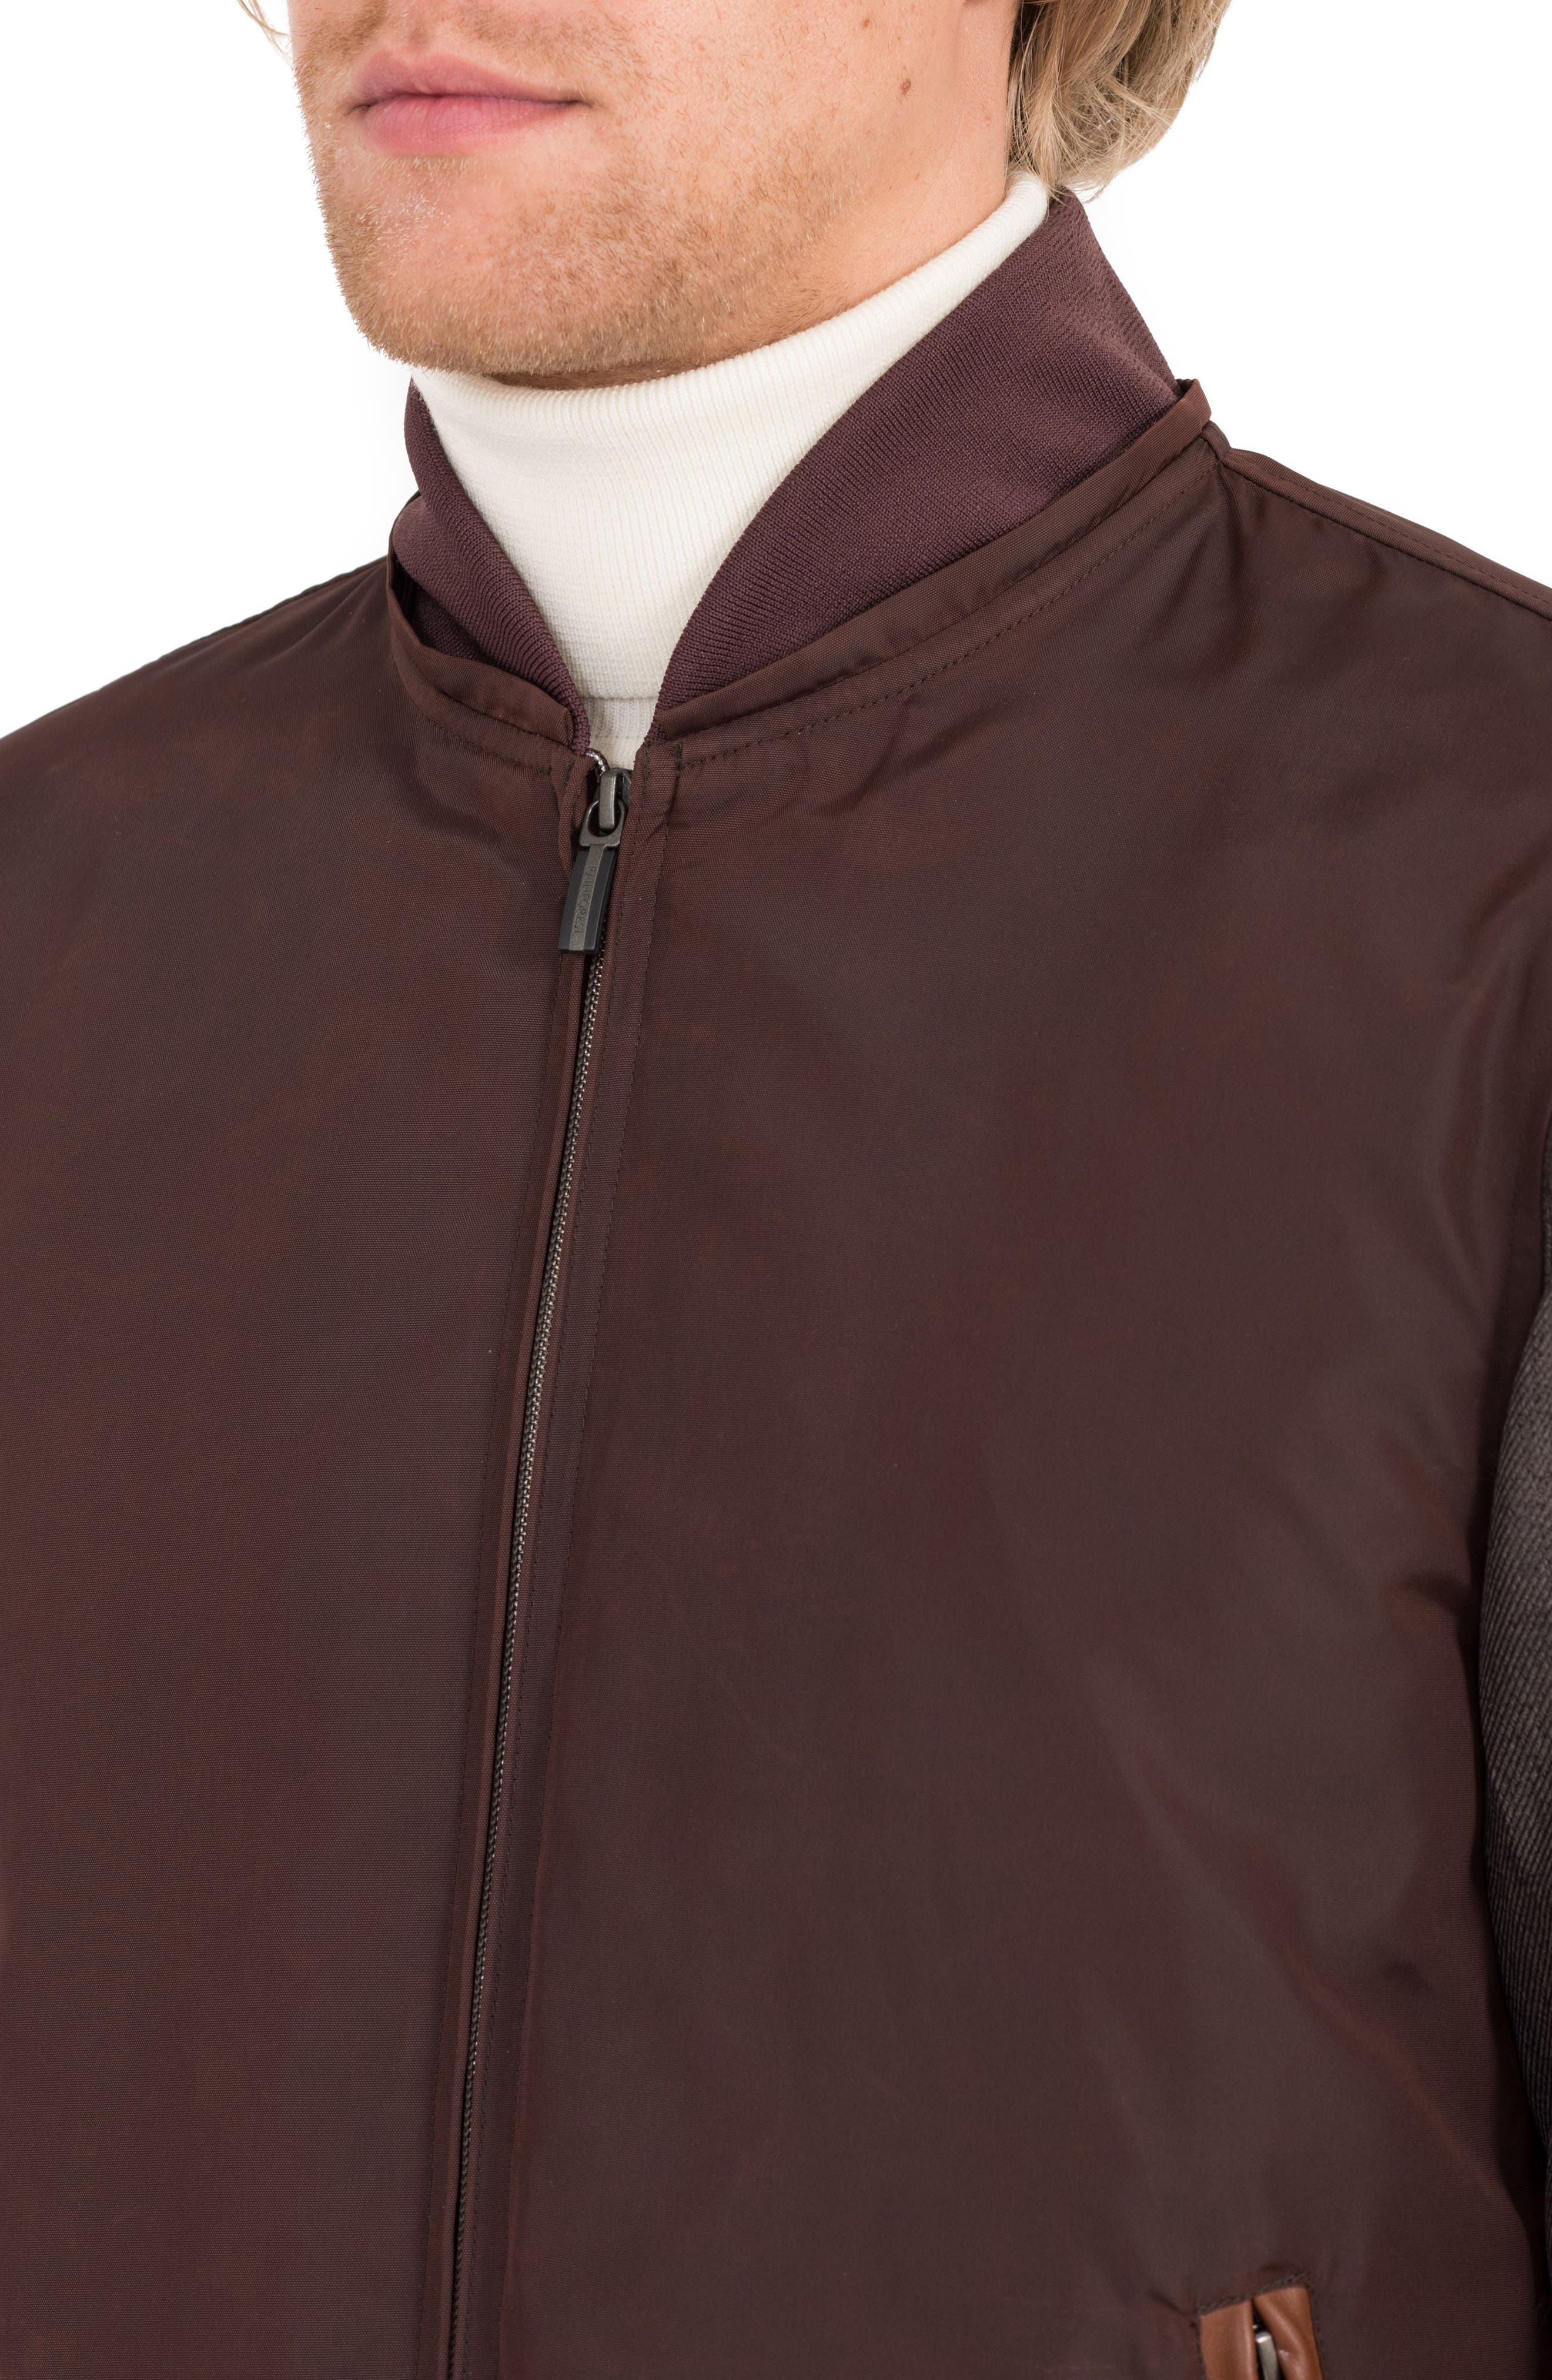 Waxed Nylon Jacket with Faux Shearling Collar,                             Alternate thumbnail 5, color,